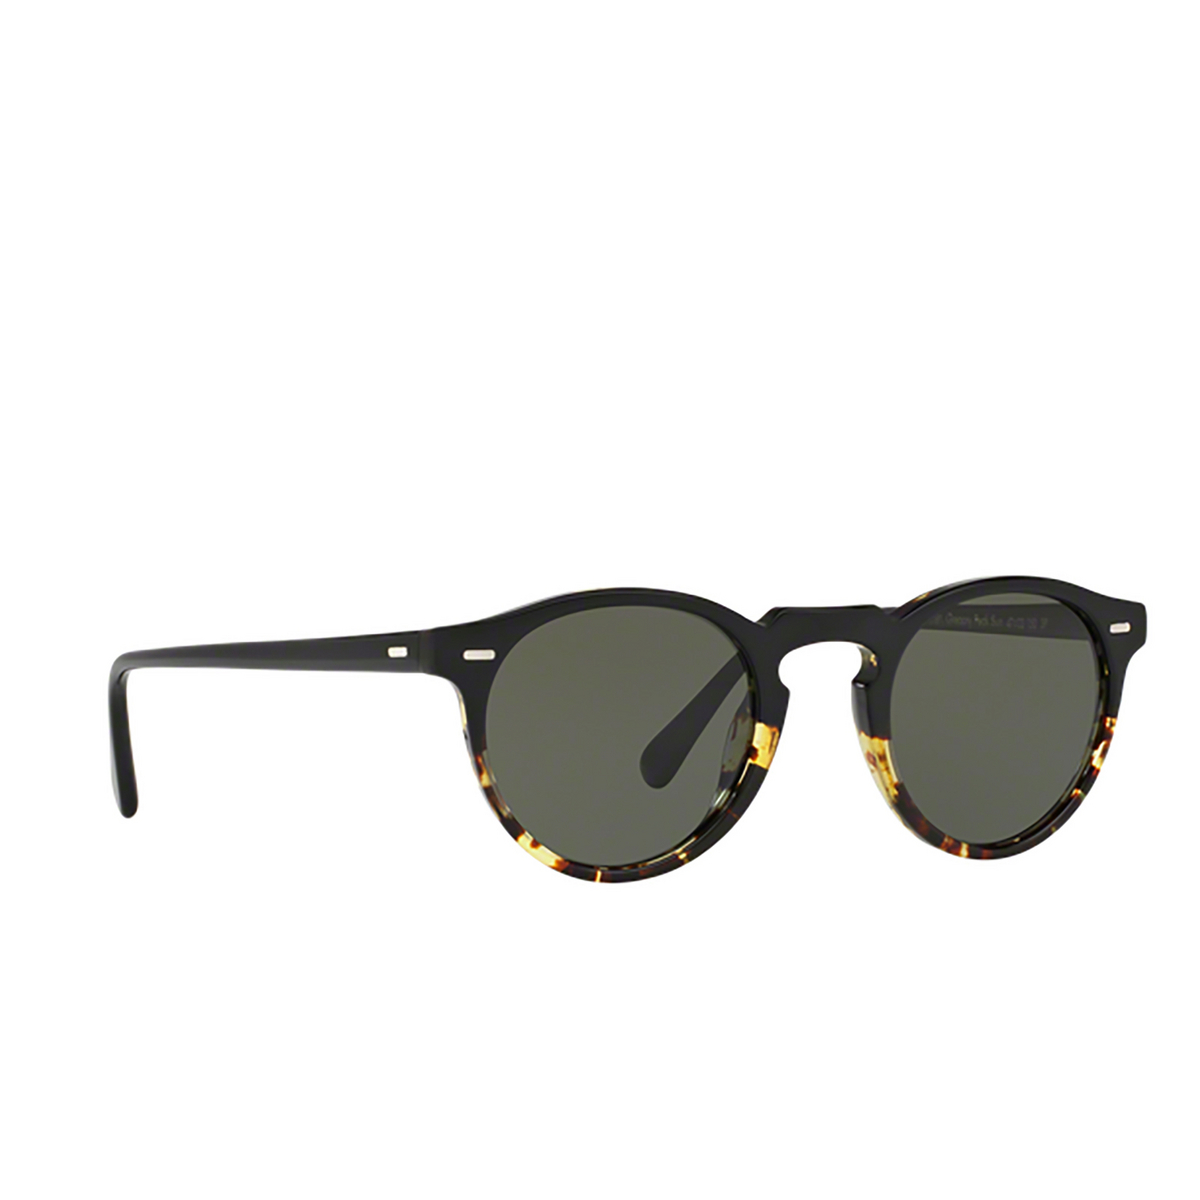 Oliver Peoples® Round Sunglasses: Gregory Peck Sun OV5217S color Black / Dtbk Gradient 1178P1 - three-quarters view.